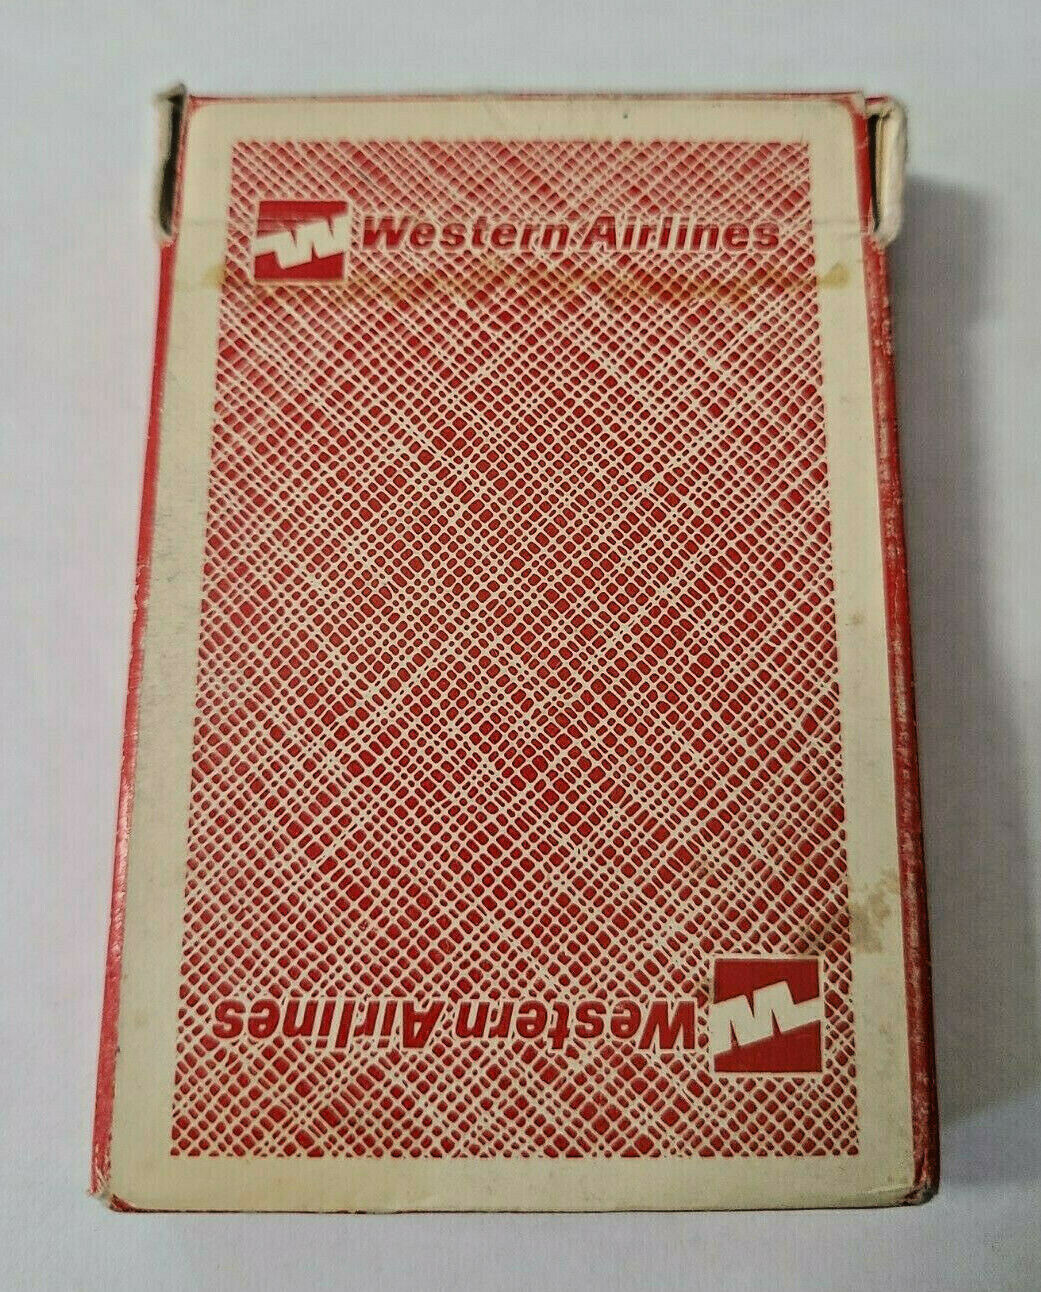 Western Airlines Kent St. Paul, Minn Deck of Playing Cards   (#42)